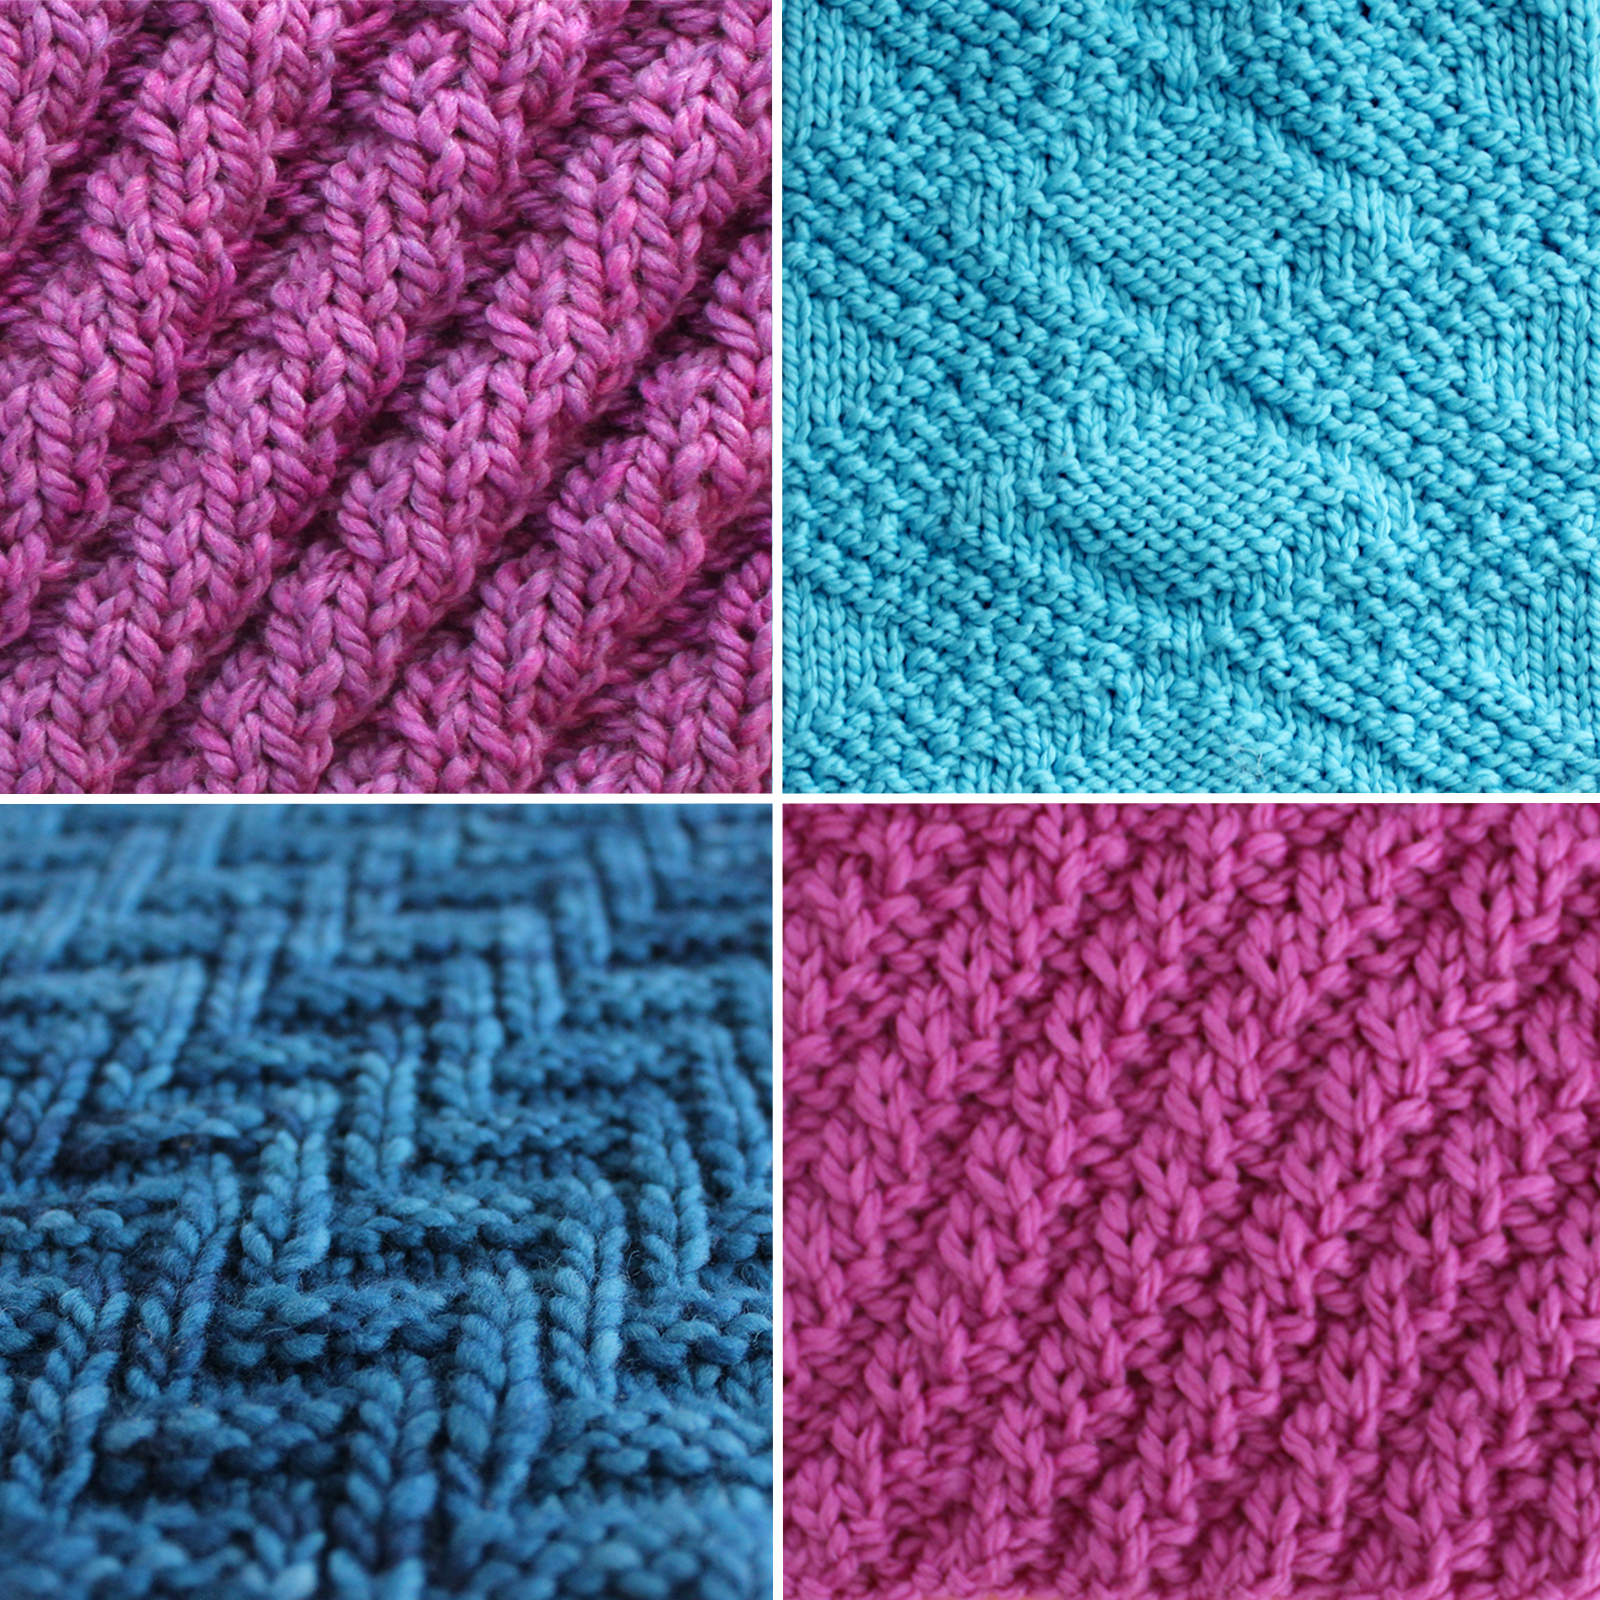 Collection of four diagonal knit stitch patterns in blue and purple yarn colors.